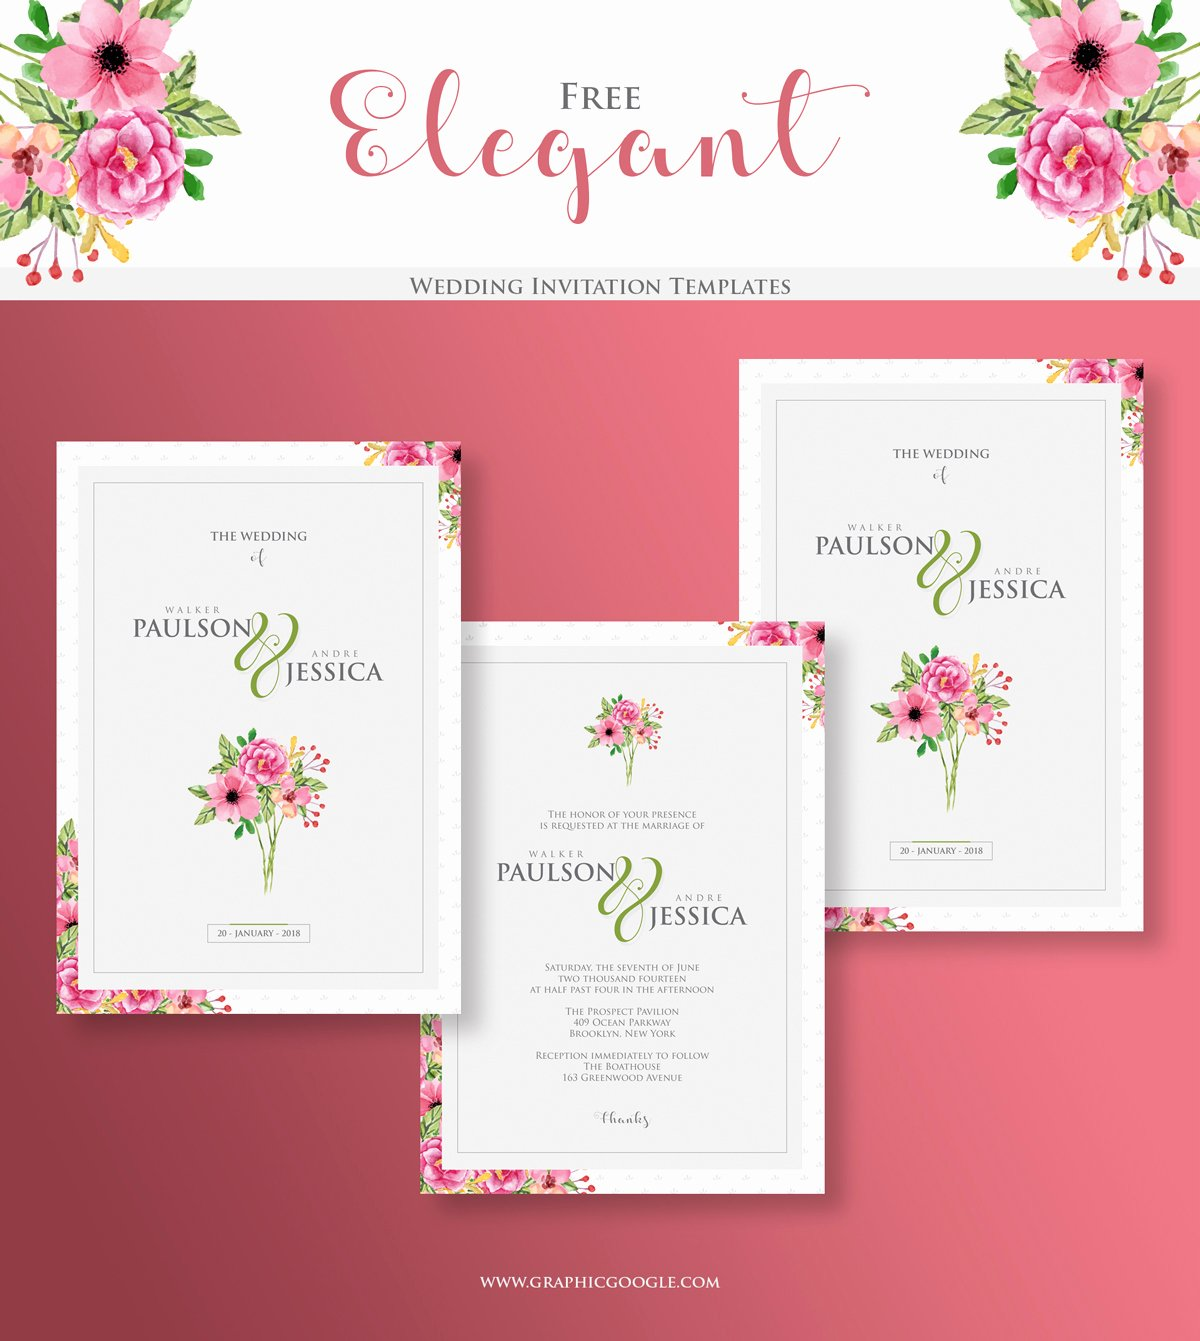 Wedding Invitation Templates Free Elegant Free Elegant Wedding Invitation Templatesgraphic Google